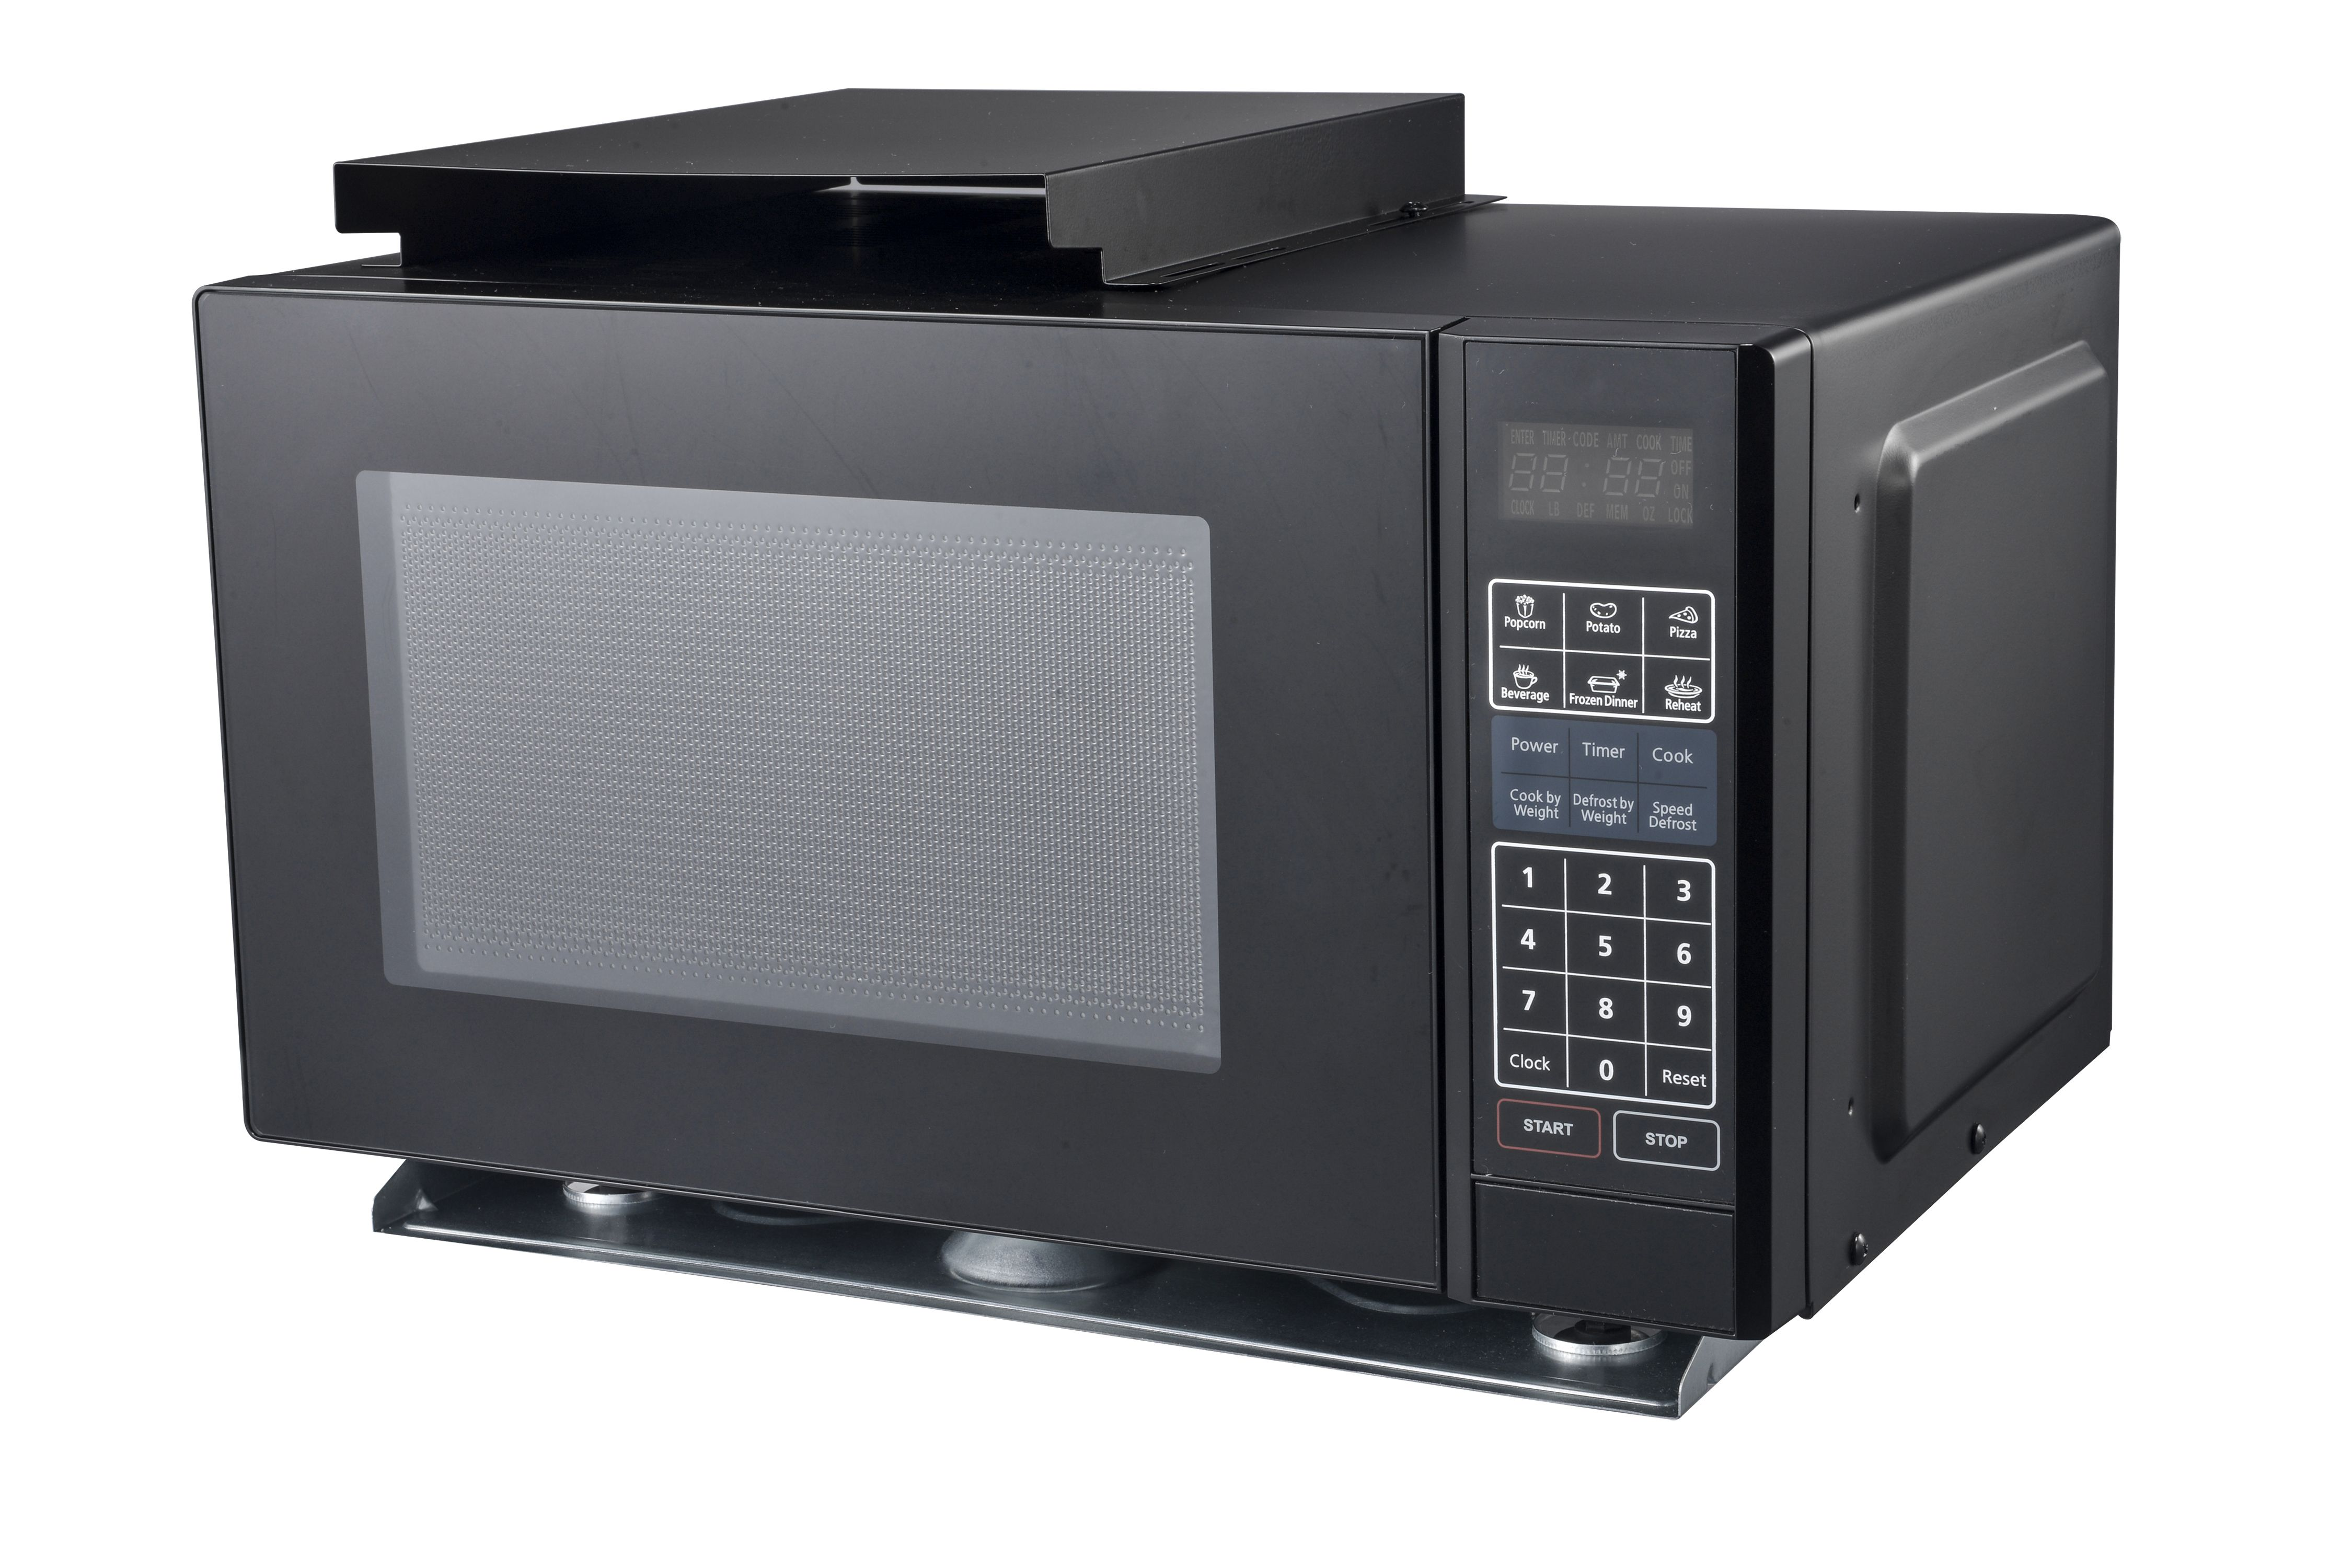 MCG992ARB Forest River Microwave Oven 0.9 Cubic Foot Capacity